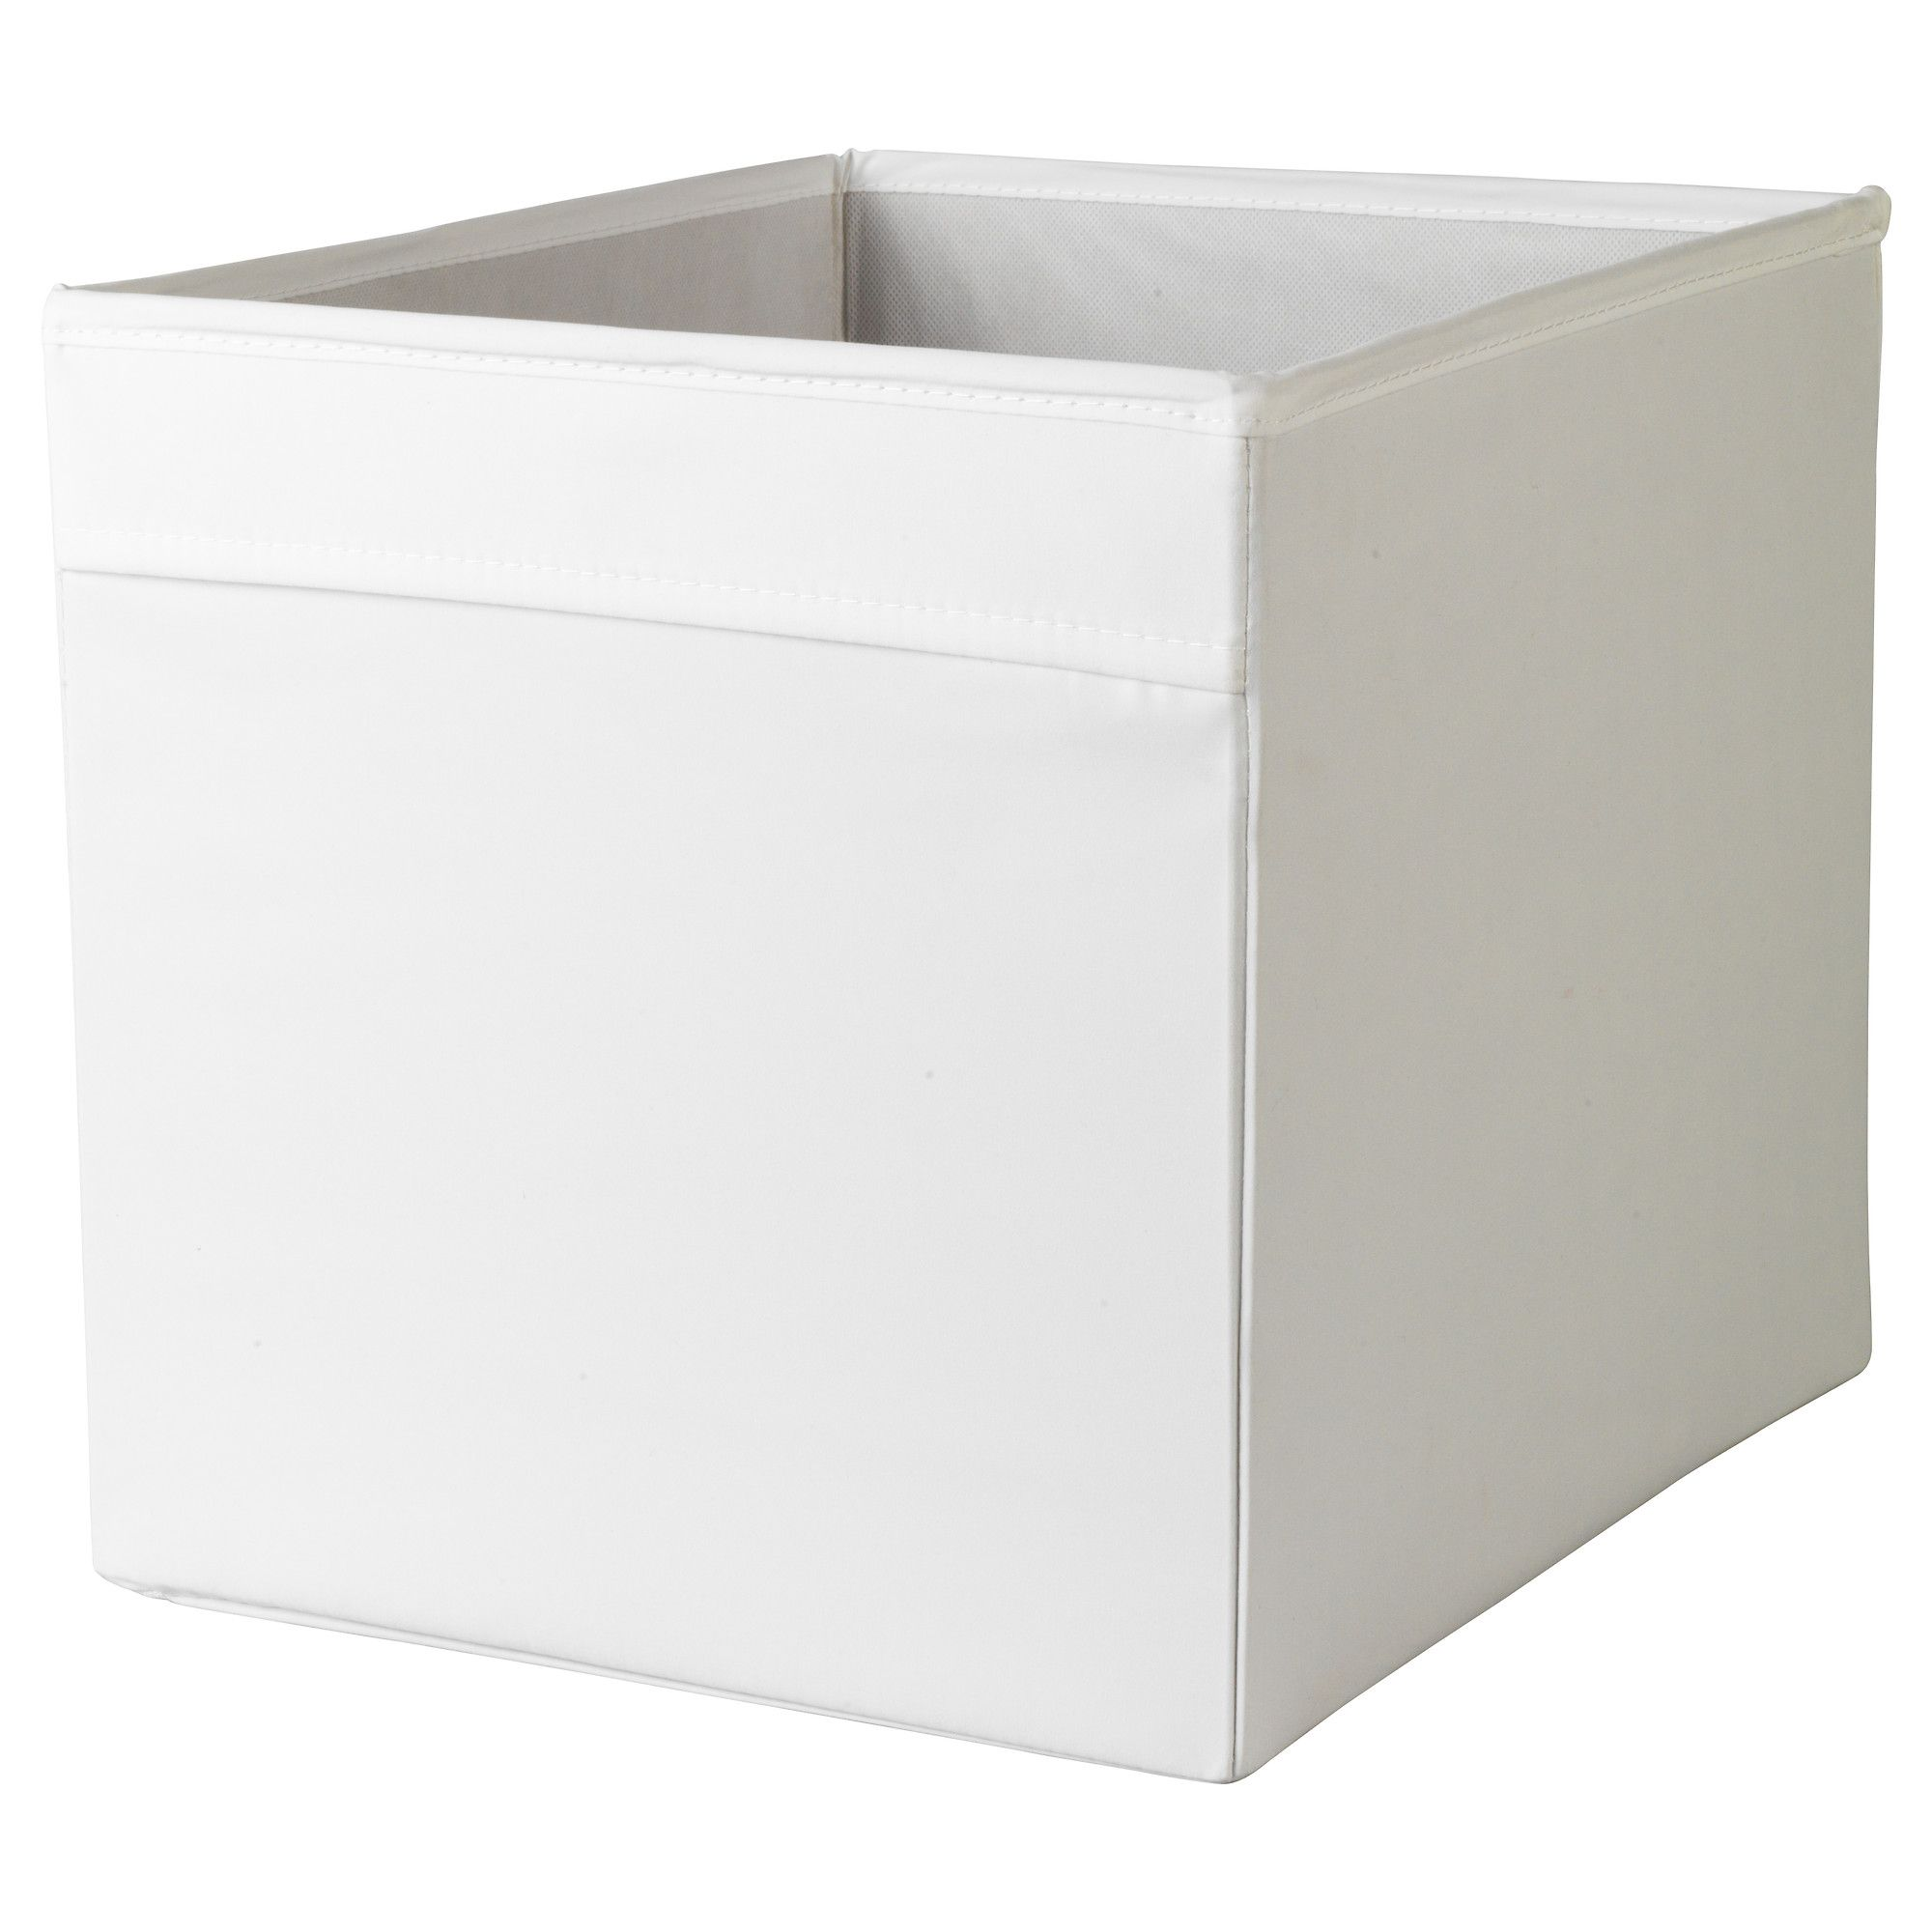 Aufbewahrungsbox Ikea Expedit DrÖna Box White Ikea Pinterest Ikea Storage And Box